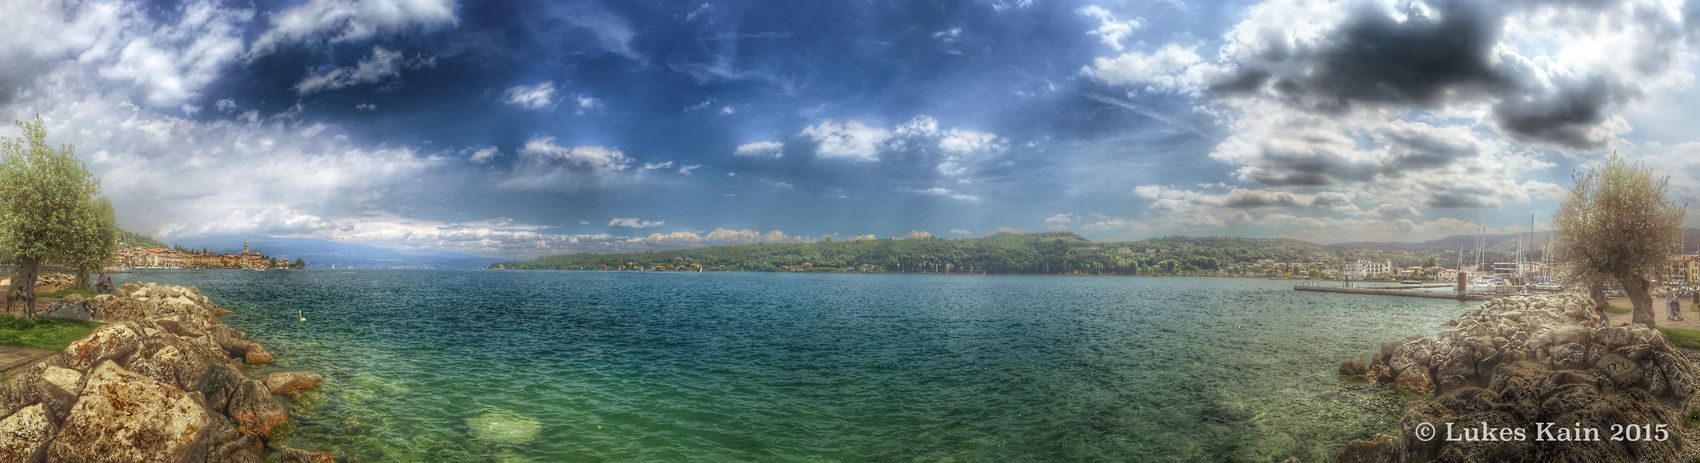 Lake view from Saló - Italy IPhoneography EyeEmBestPics EyeEm Best Shots EyeEm Best Edits IPhone Tadaa Community Panorama HDR Check This Out Landscape